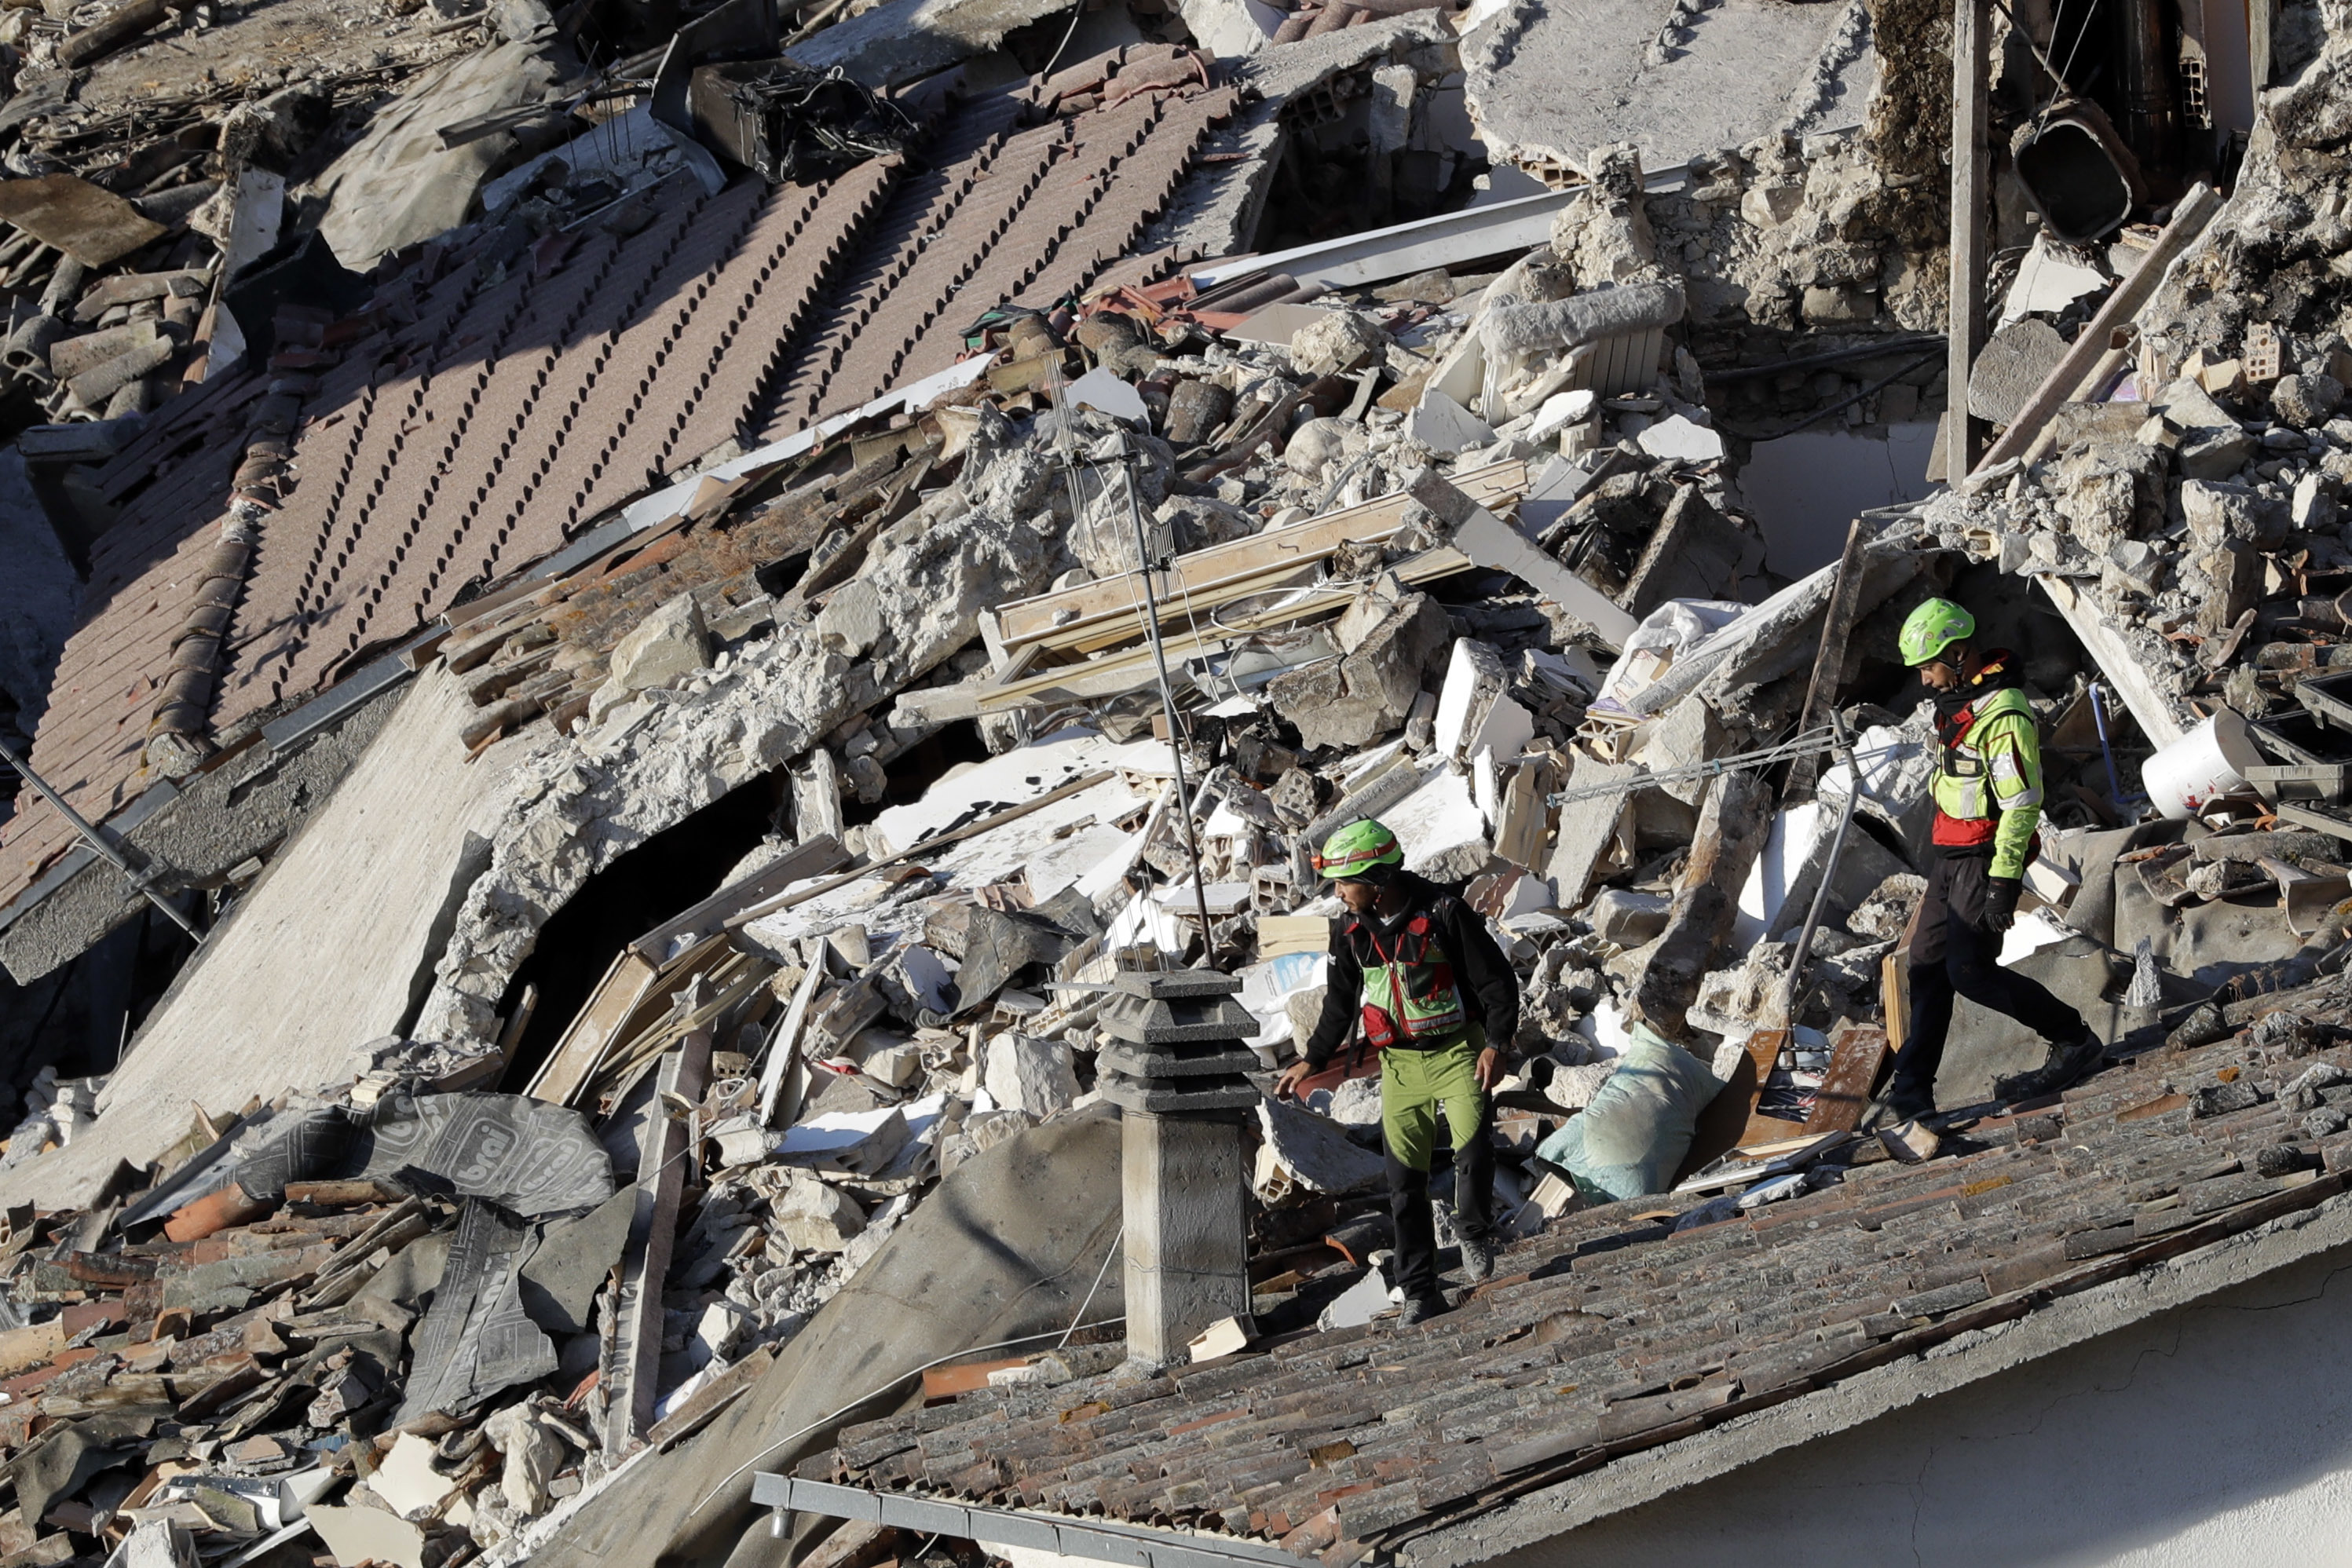 Rescuers make their way through destroyed houses following an earthquake in Pescara Del Tronto, central Italy, Aug. 25, 2016.